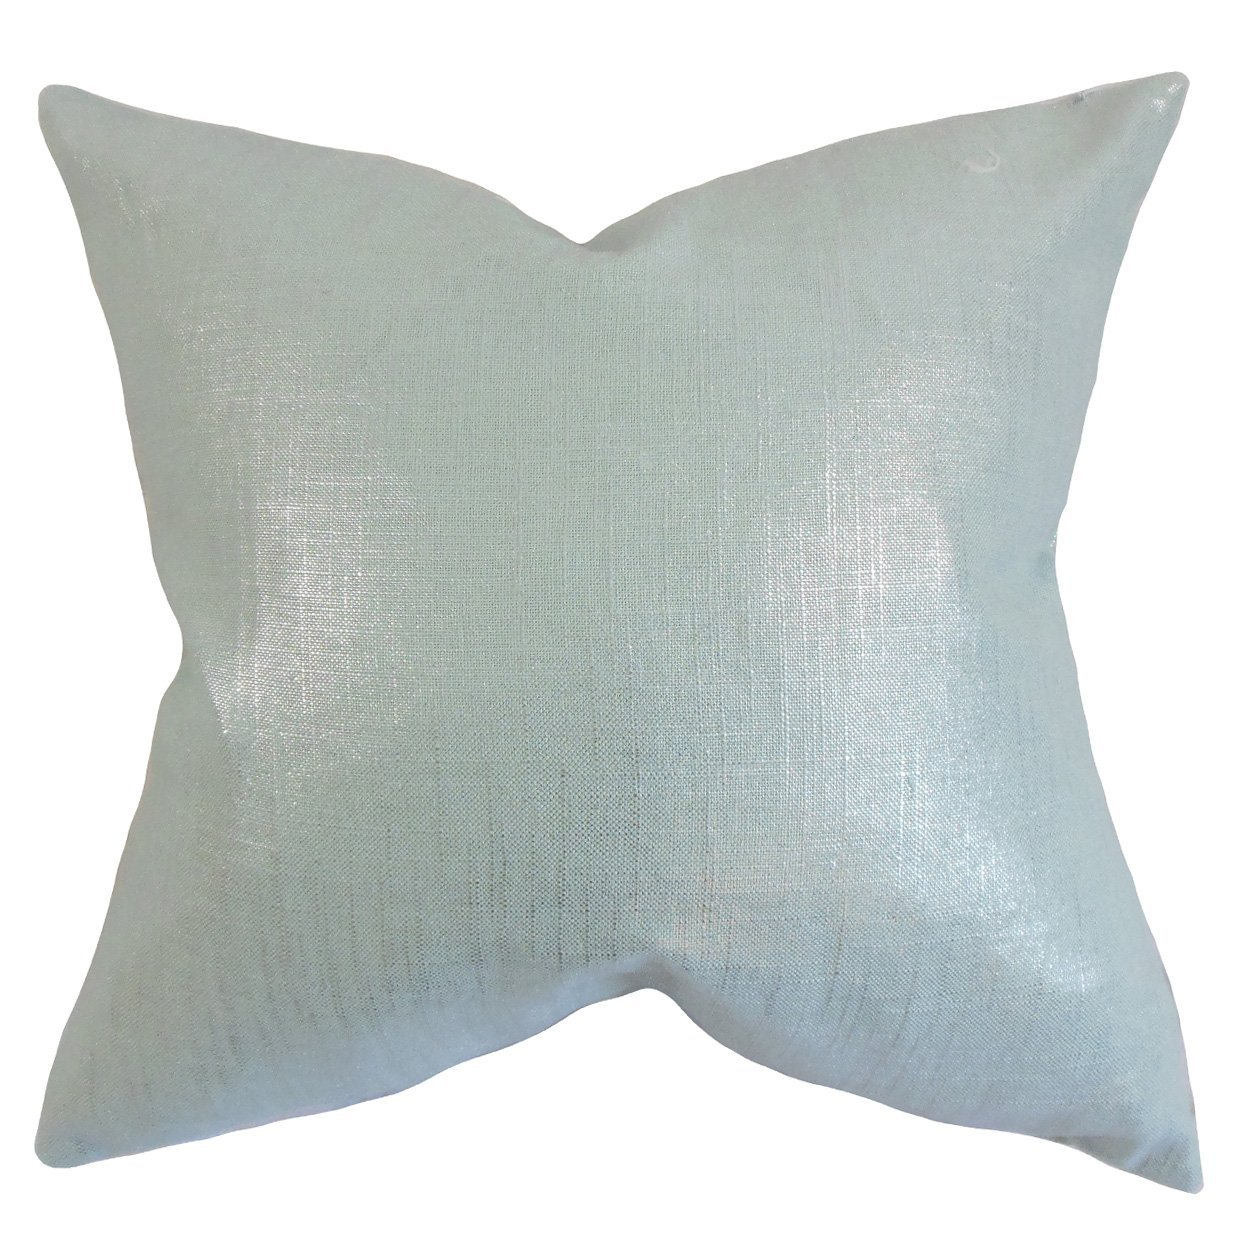 The Pillow Collection Florin Solid Bedding Sham Baby Blue Queen//20 x 30 QUEEN-d-32747-babyblue-55l45c